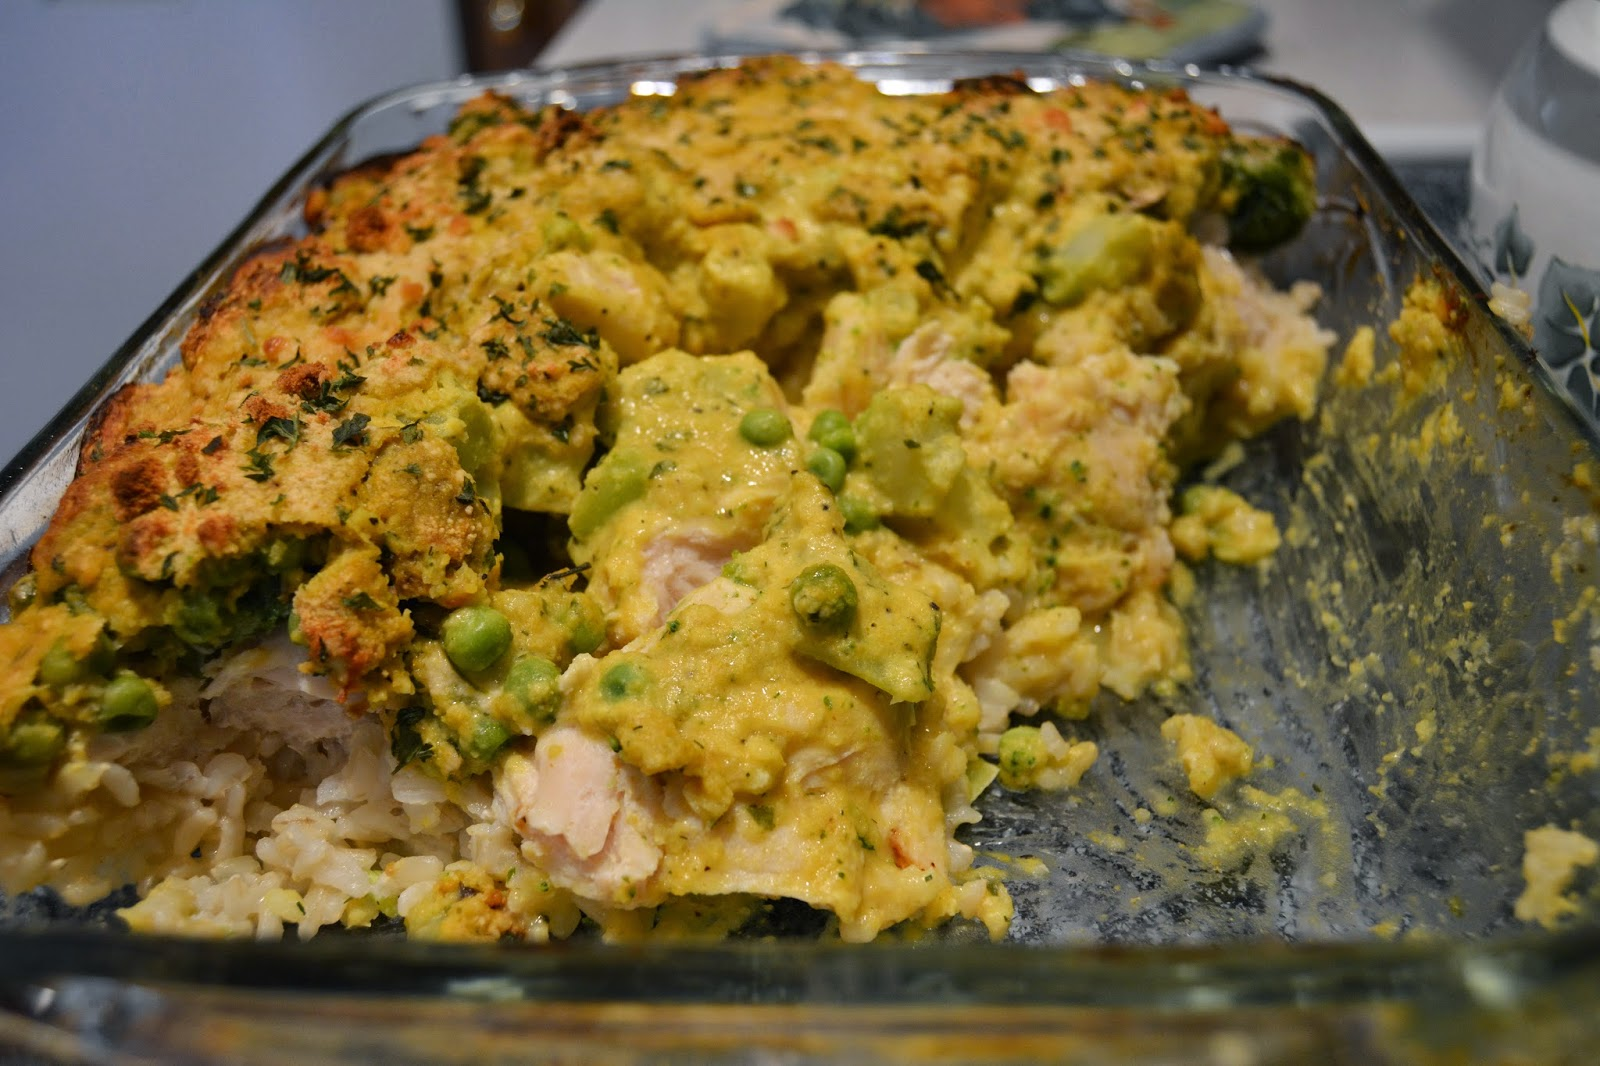 Sorry, this casserole was quite unphotogenic. It was very good, though ...